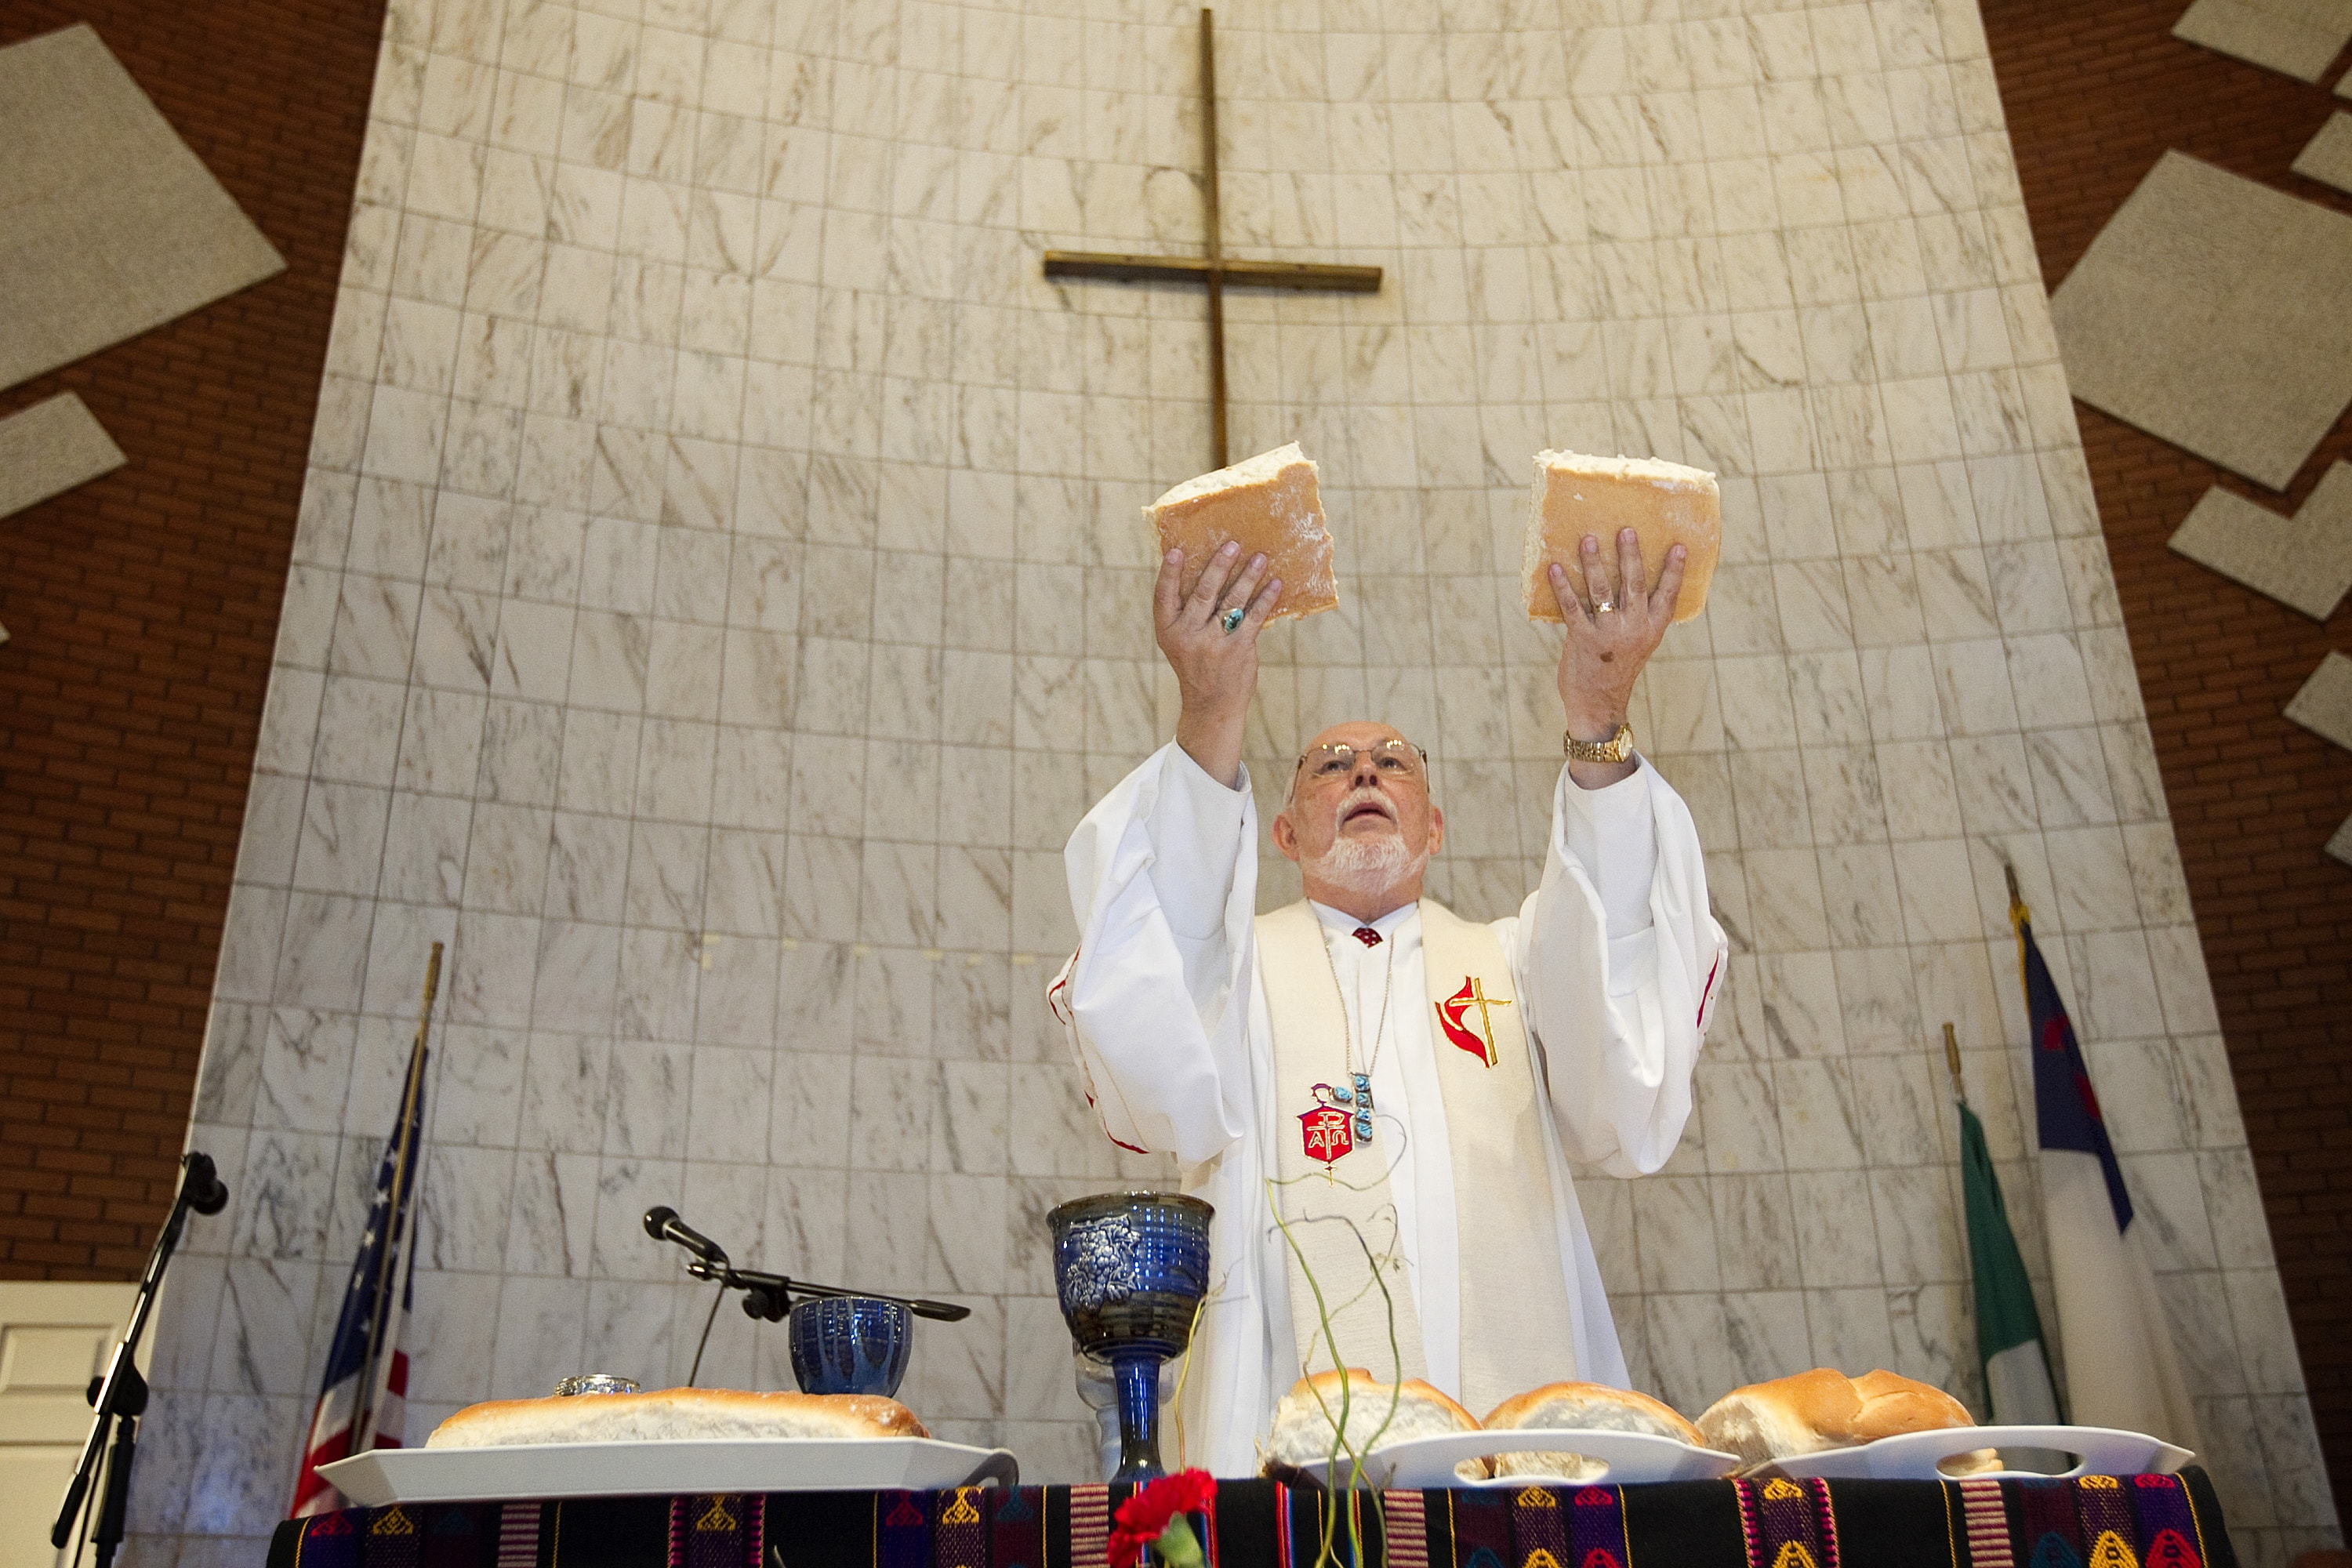 Bishop Joel N. Martinez blesses the elements of Holy Communion during opening worship at the 2011 MARCHA meeting at the Lydia Patterson Institute in El Paso, Texas. File photo by Mike DuBose, UMNS.